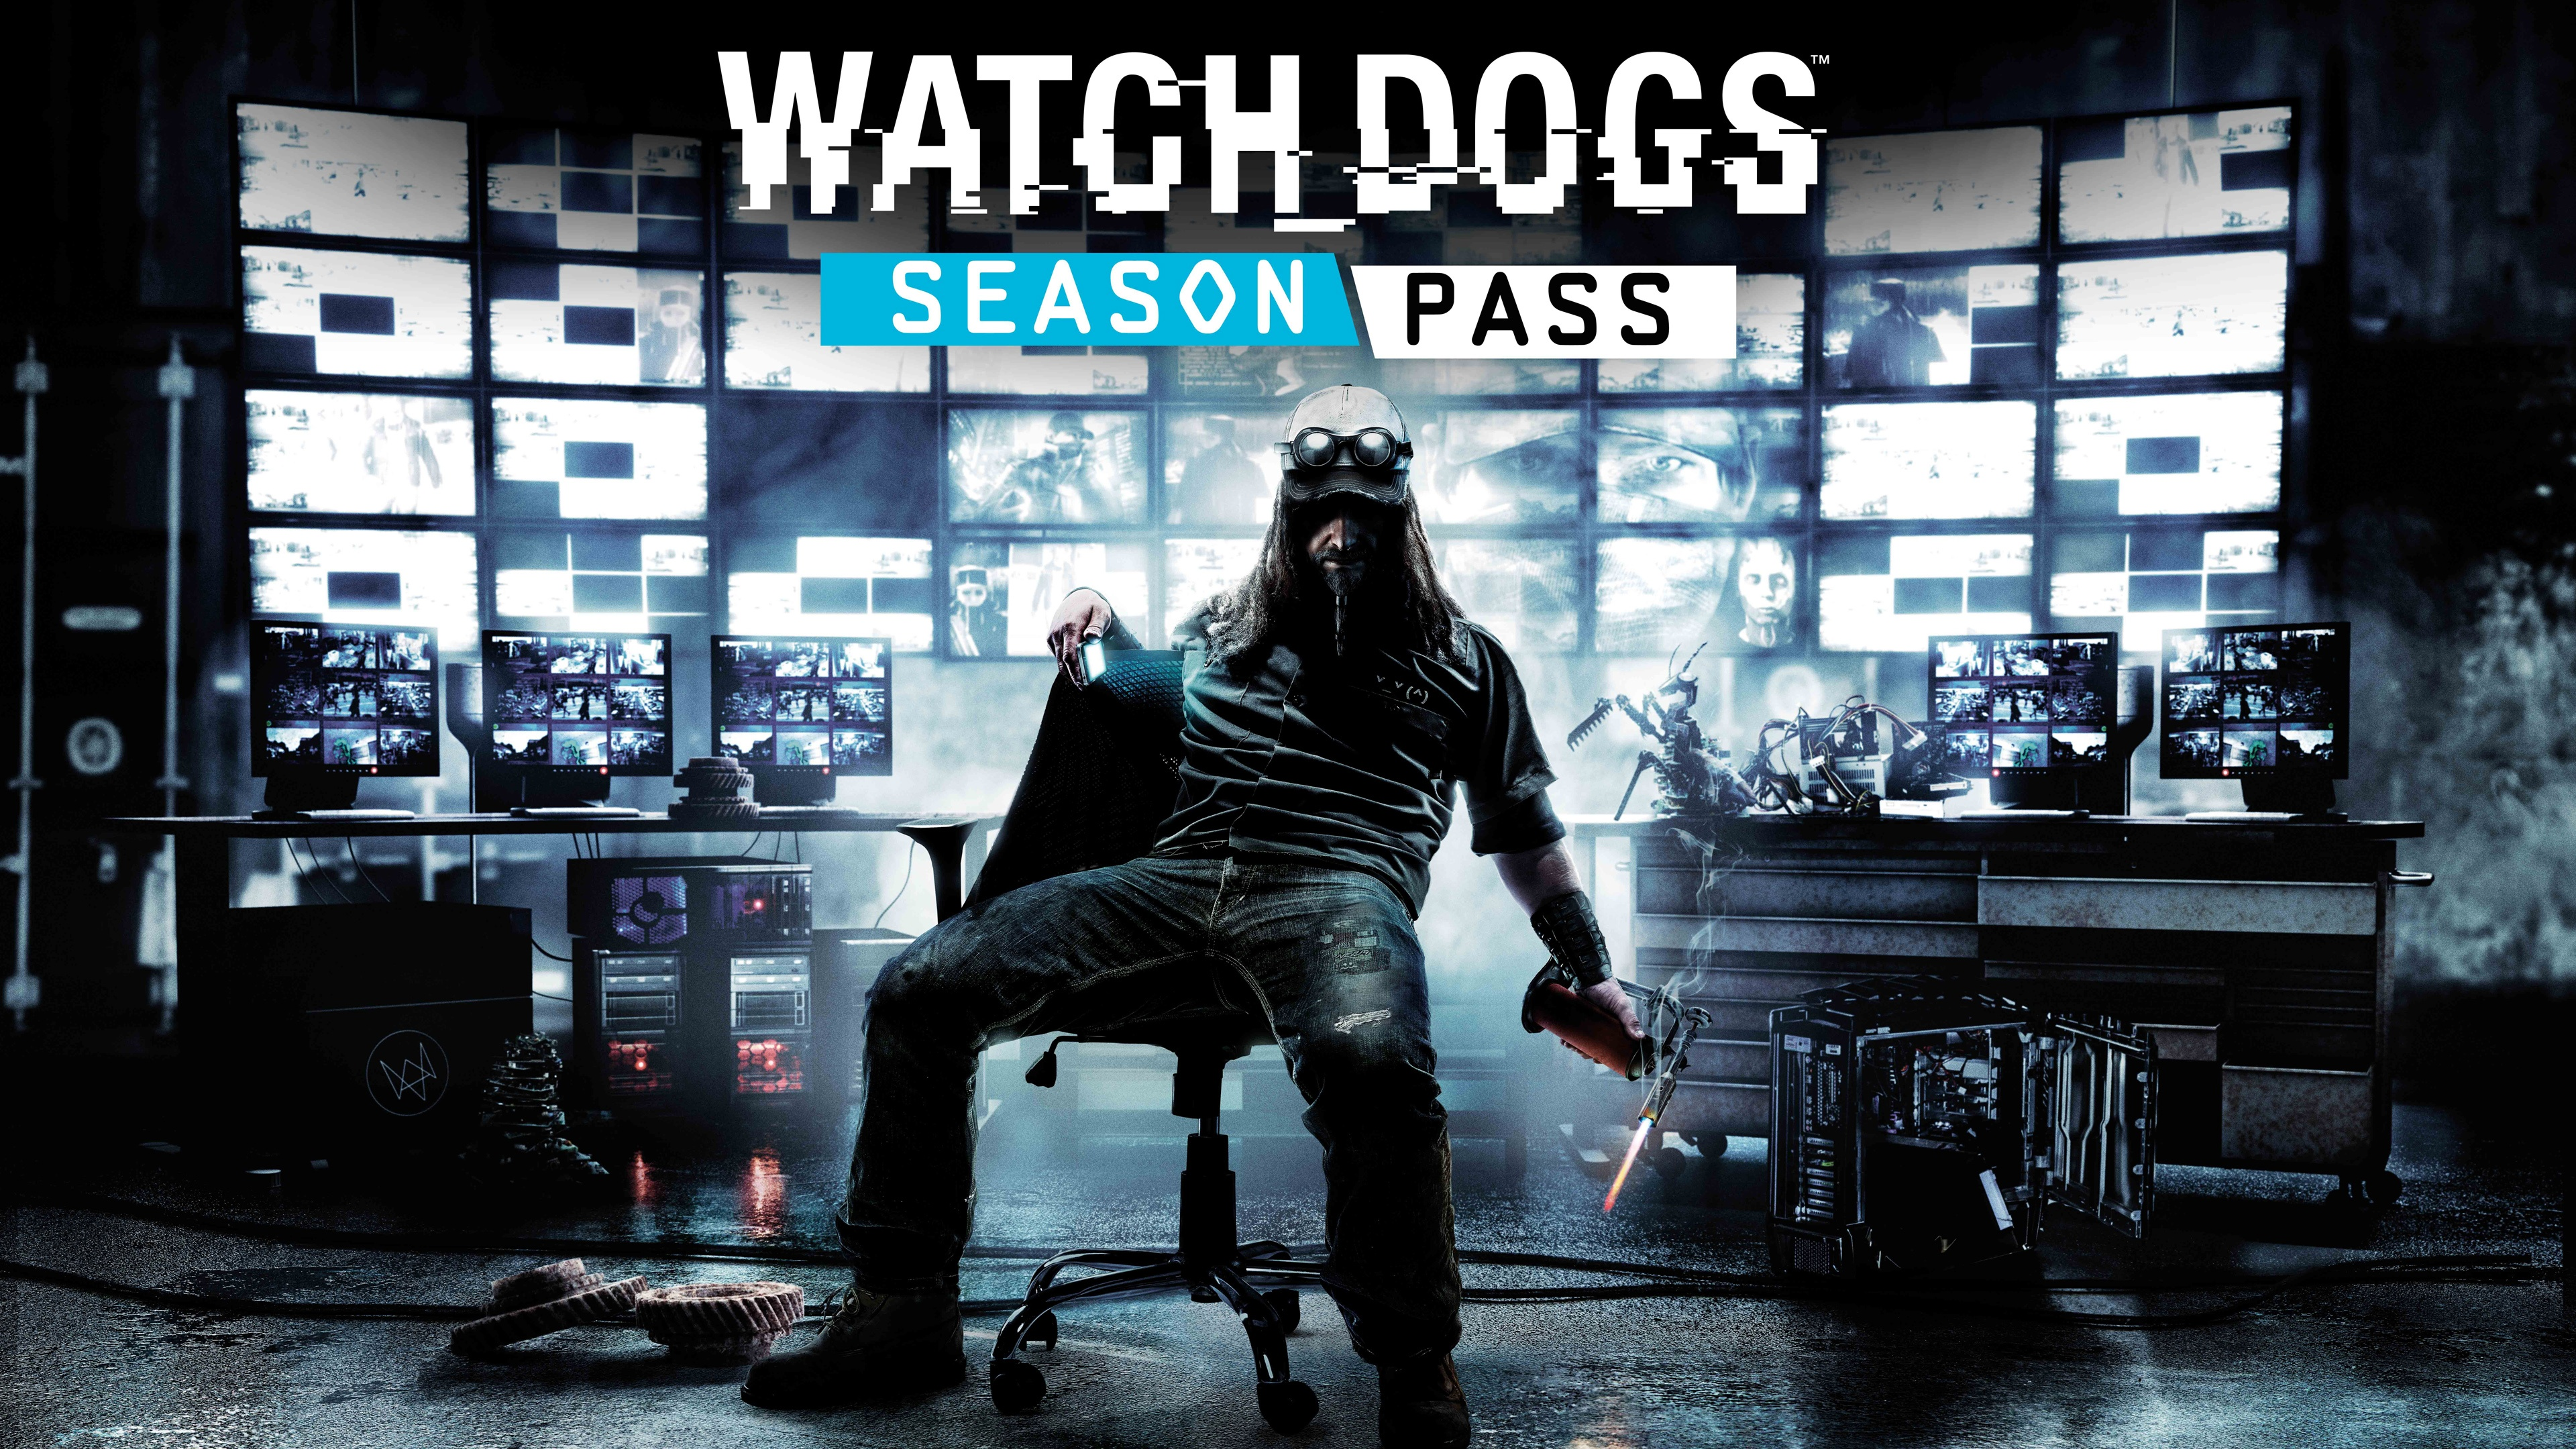 Watch dogs season pass wallpapers in jpg format for free download 25601600 28801800 38402160 voltagebd Images